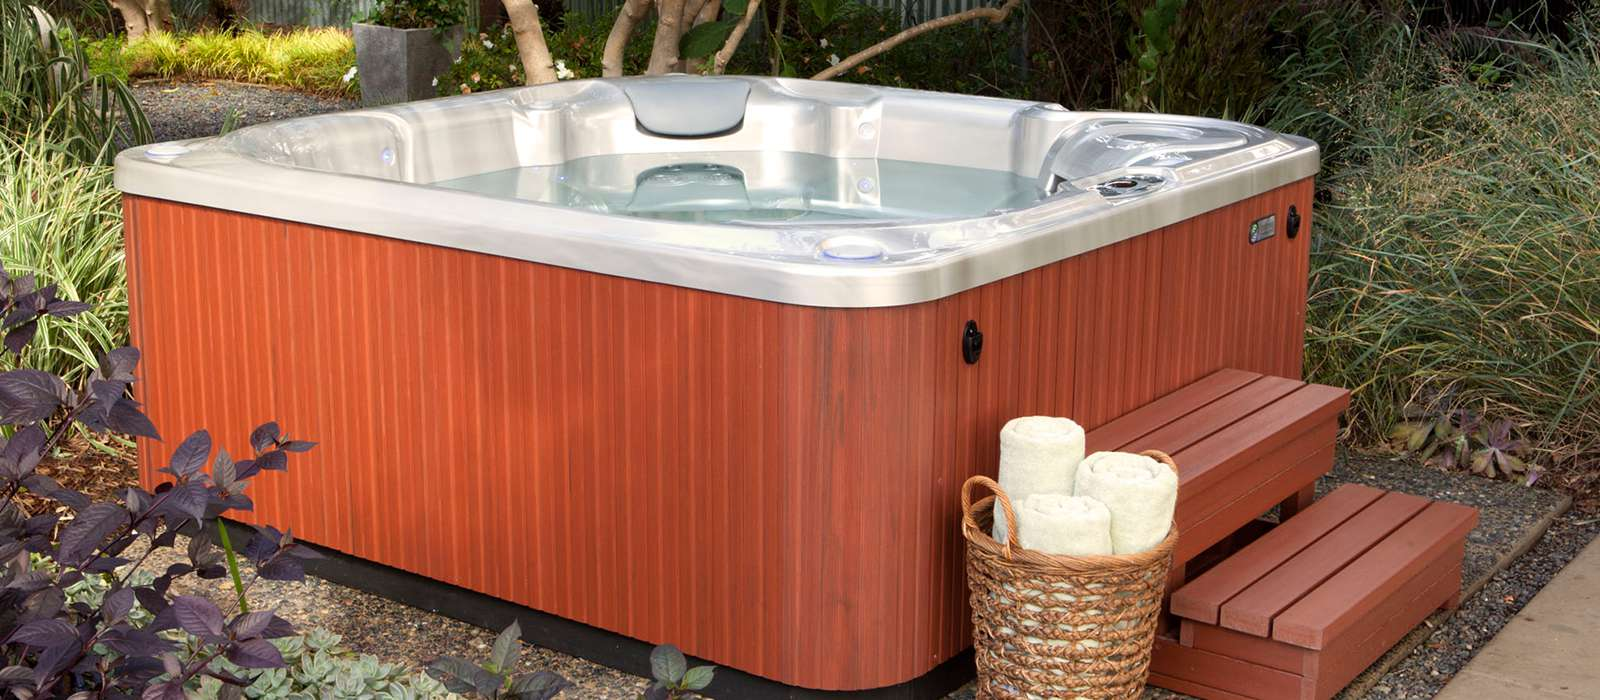 Bolt 4 person Hot Tub